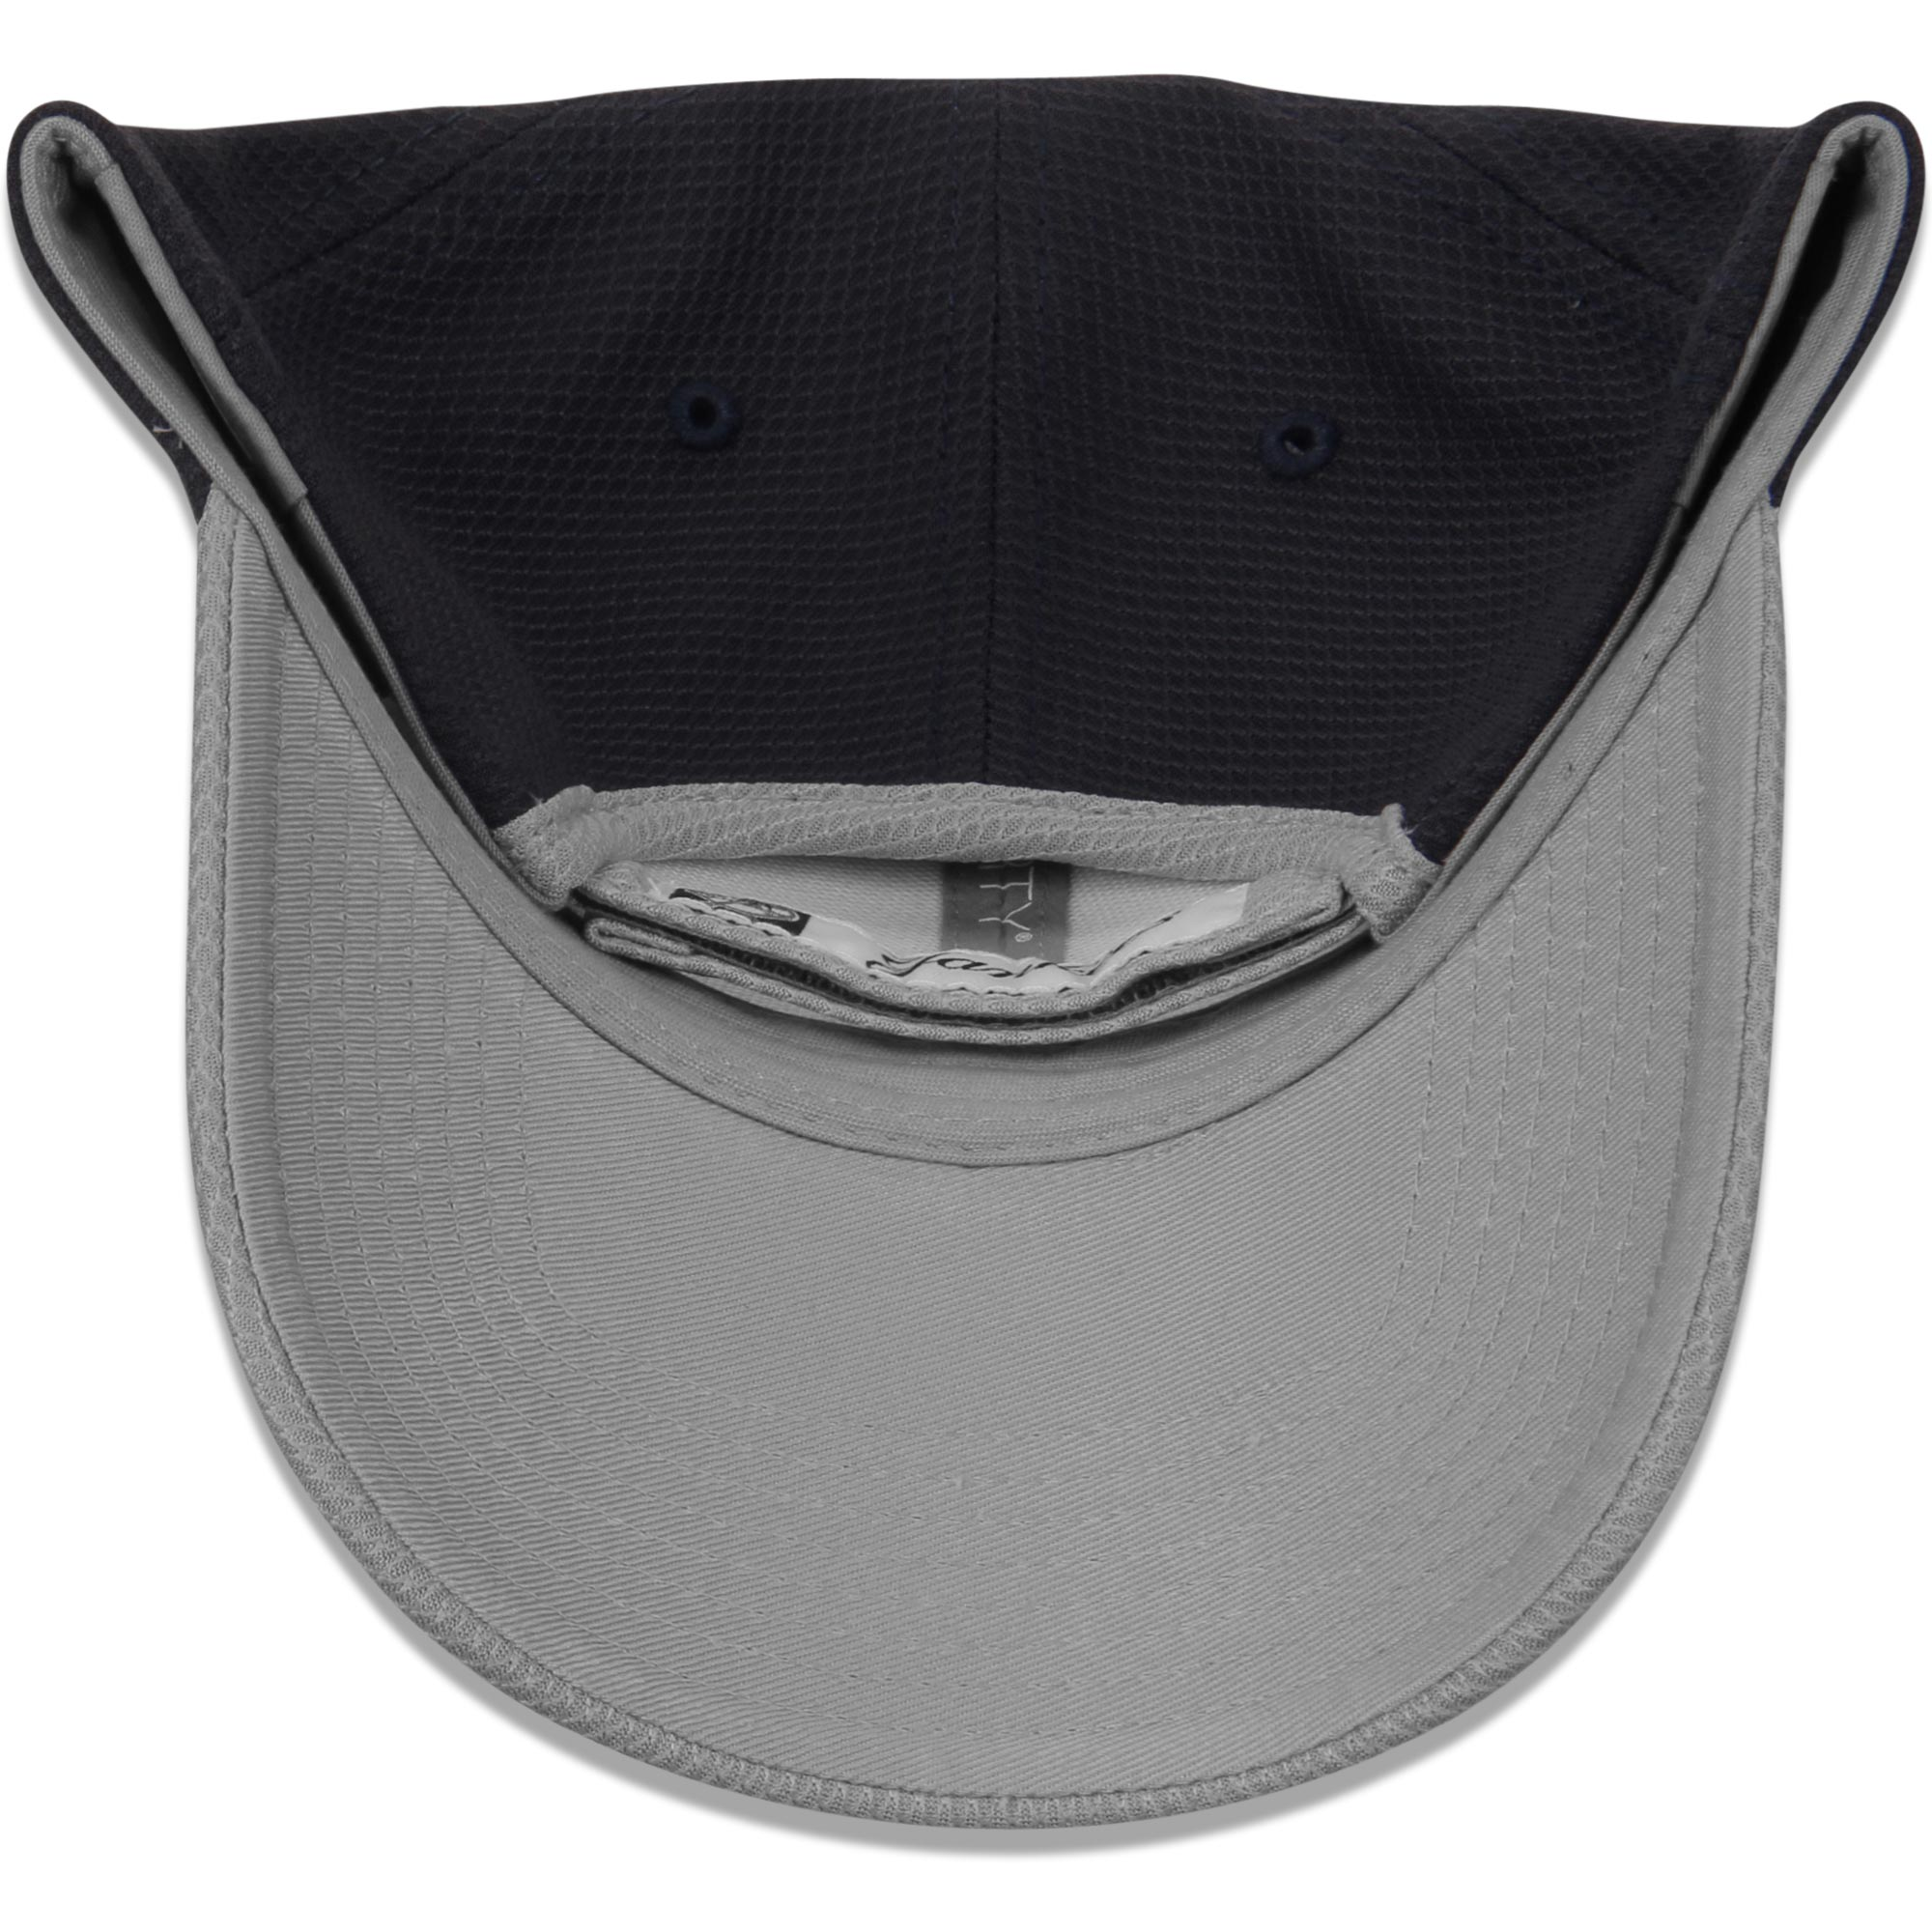 df3cb4f454b new york yankees new era perforated block 9forty adjustable hat - white gray  - osfa - Walmart.com